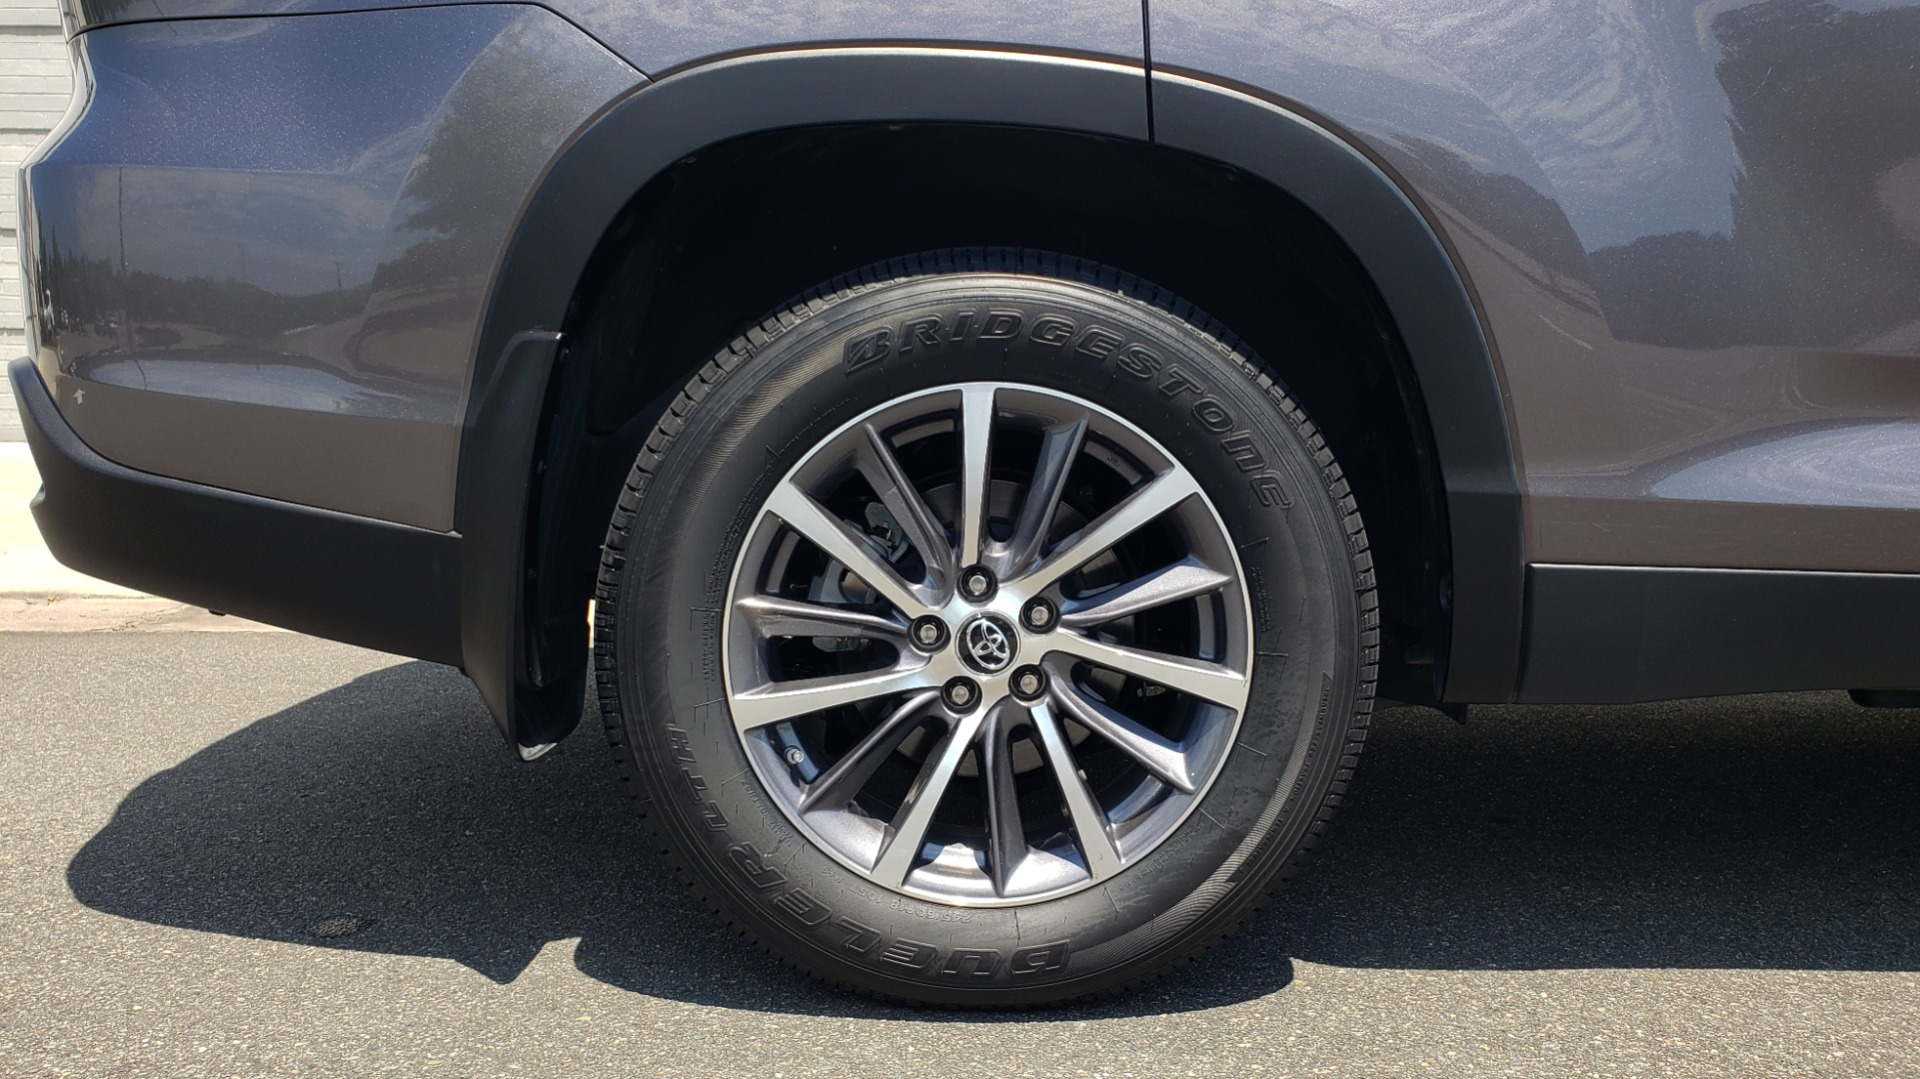 Used 2019 Toyota HIGHLANDER XLE / 3.5L V6 / AWD / LEATHER / 8-SPD AUTO / 1-OWNER for sale $37,500 at Formula Imports in Charlotte NC 28227 82